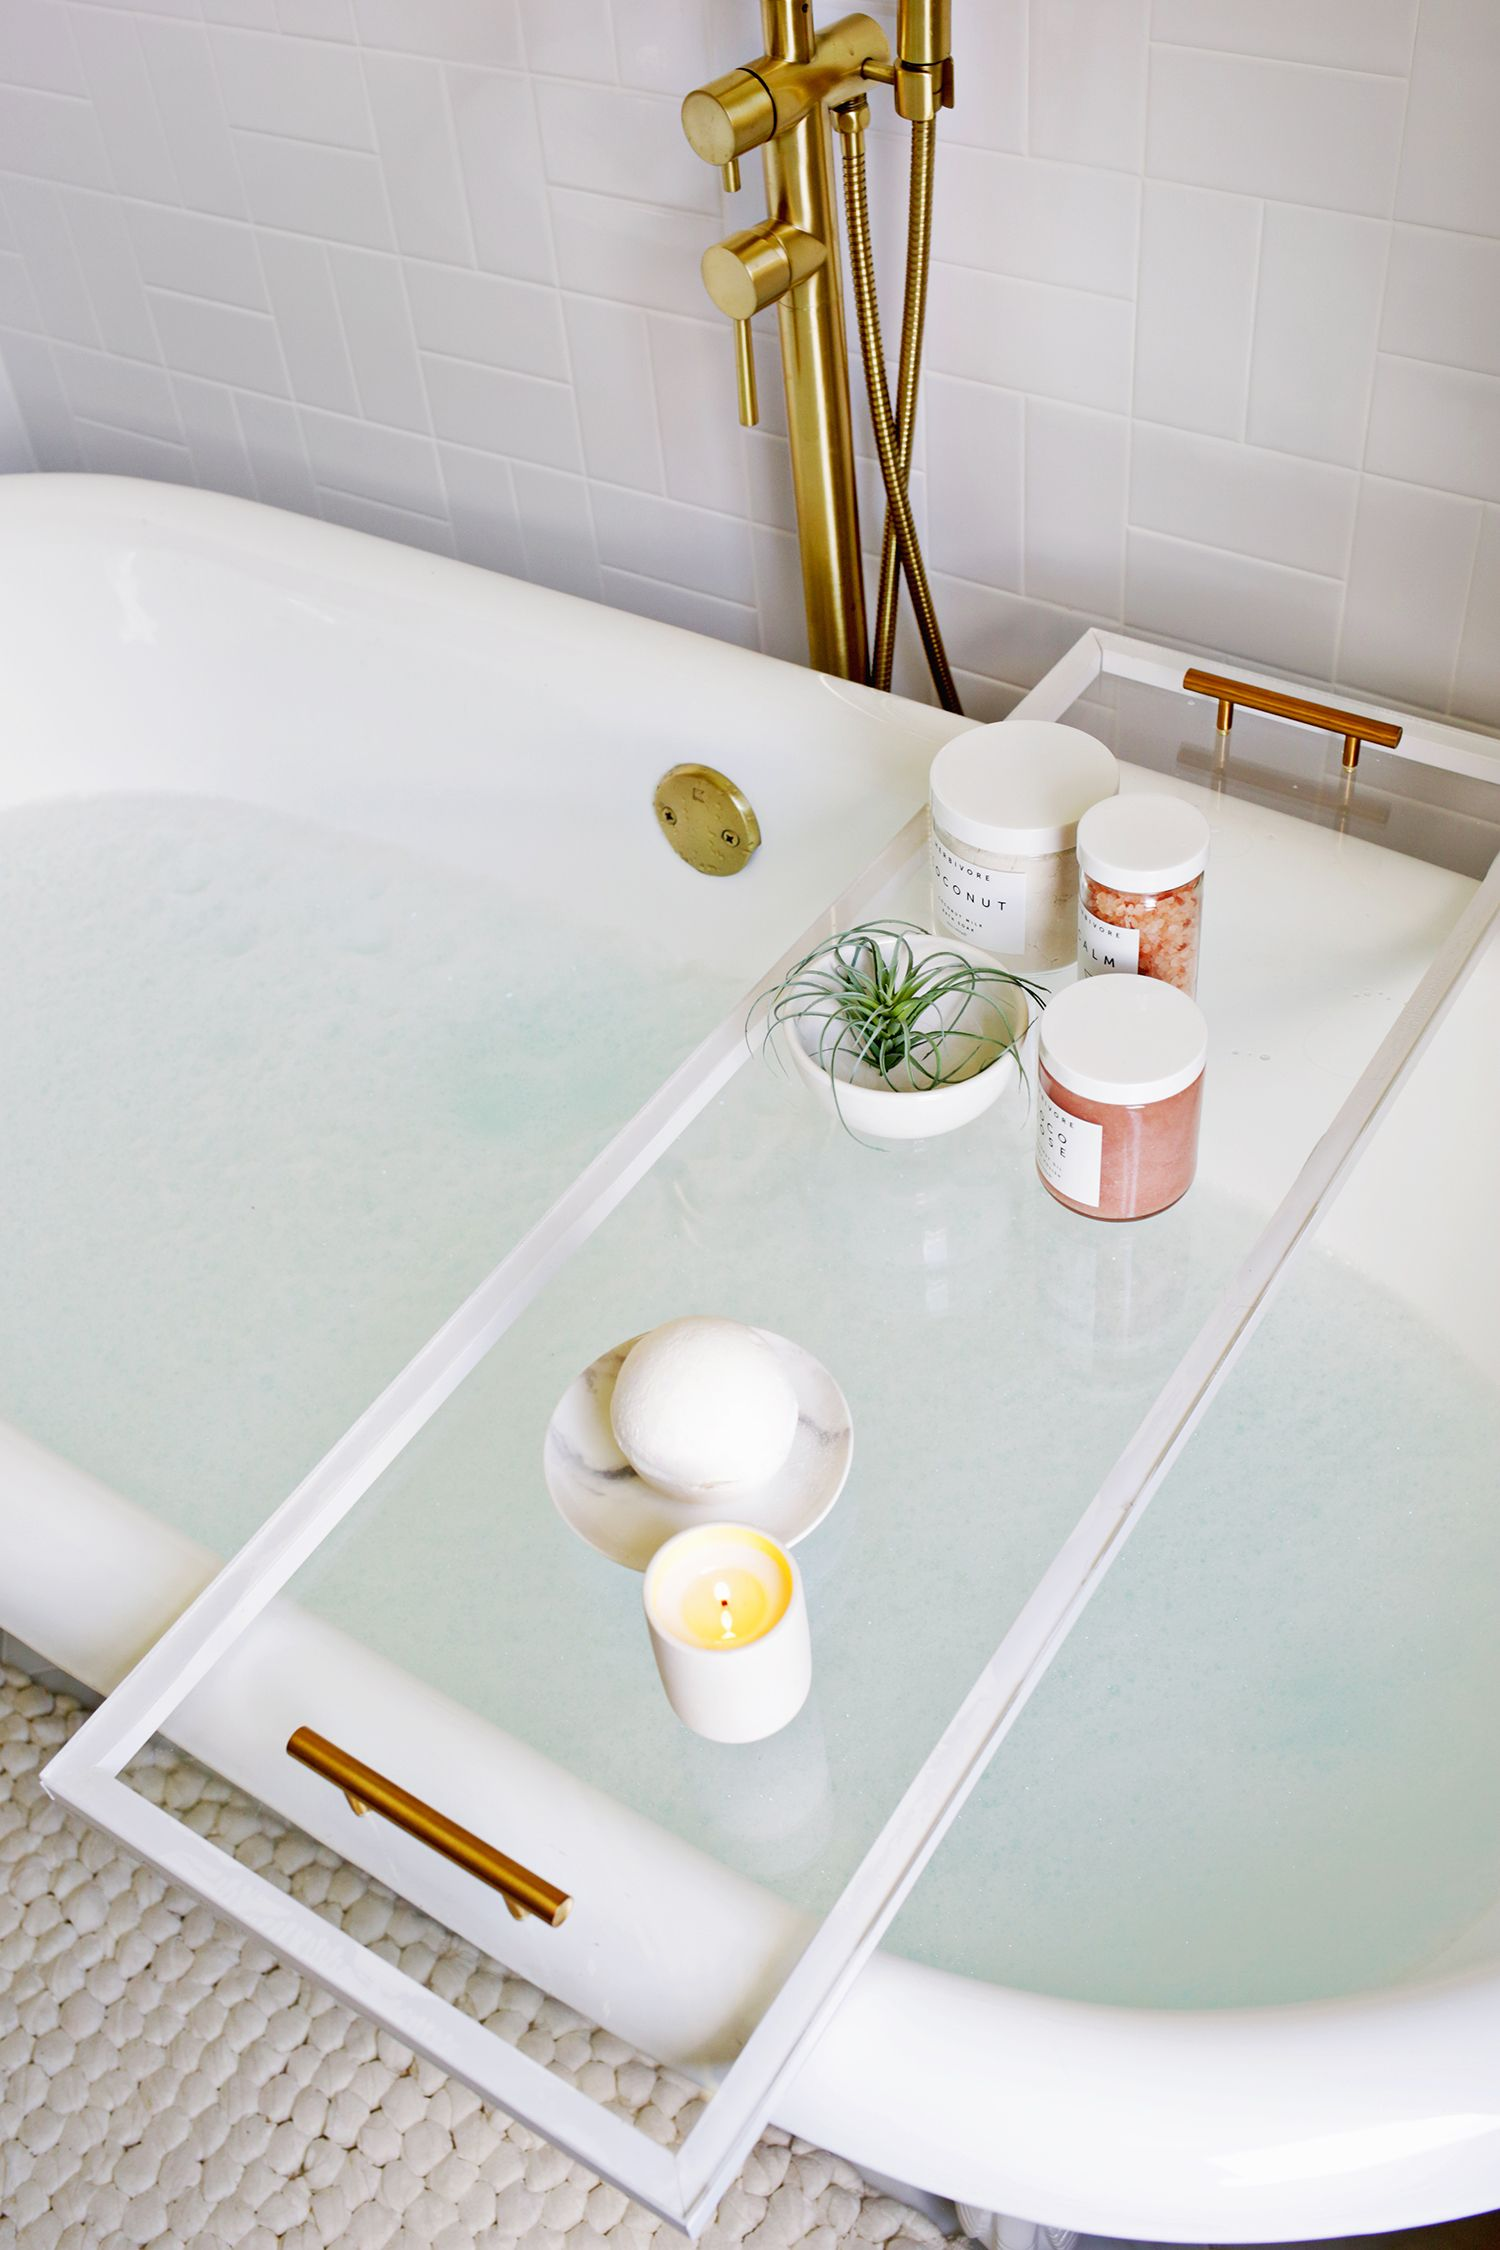 Lucite Bathtub Caddy DIY | Pinterest | Bathtub caddy, Bathtubs and ...